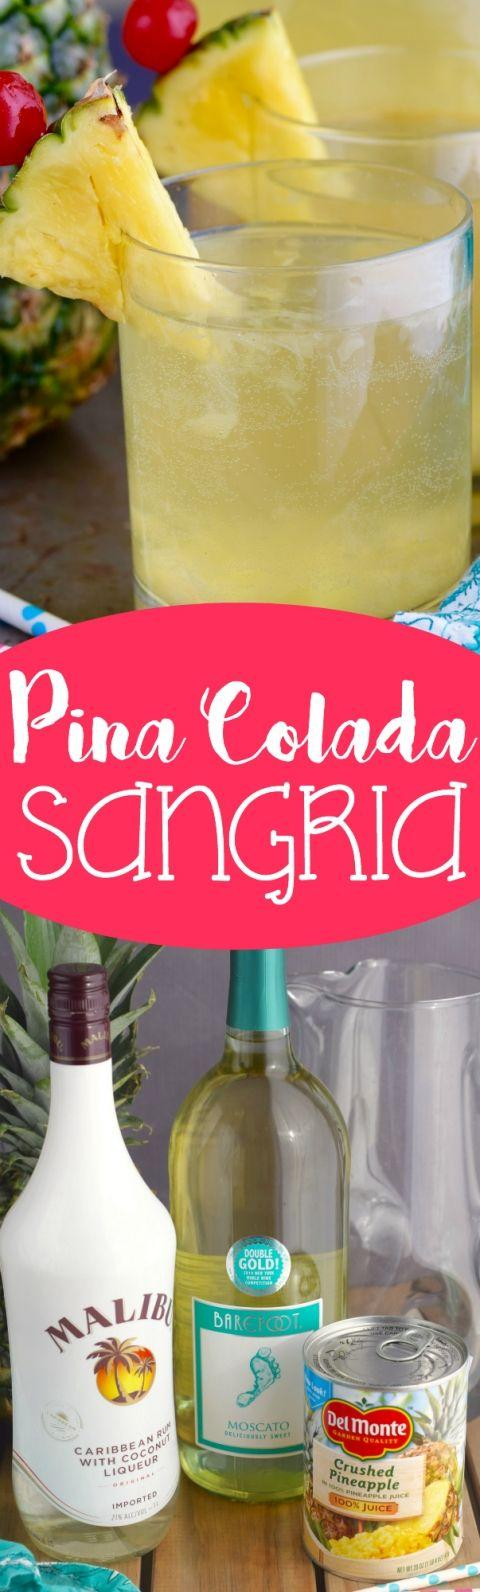 Wedding - Pina Colada Sangria